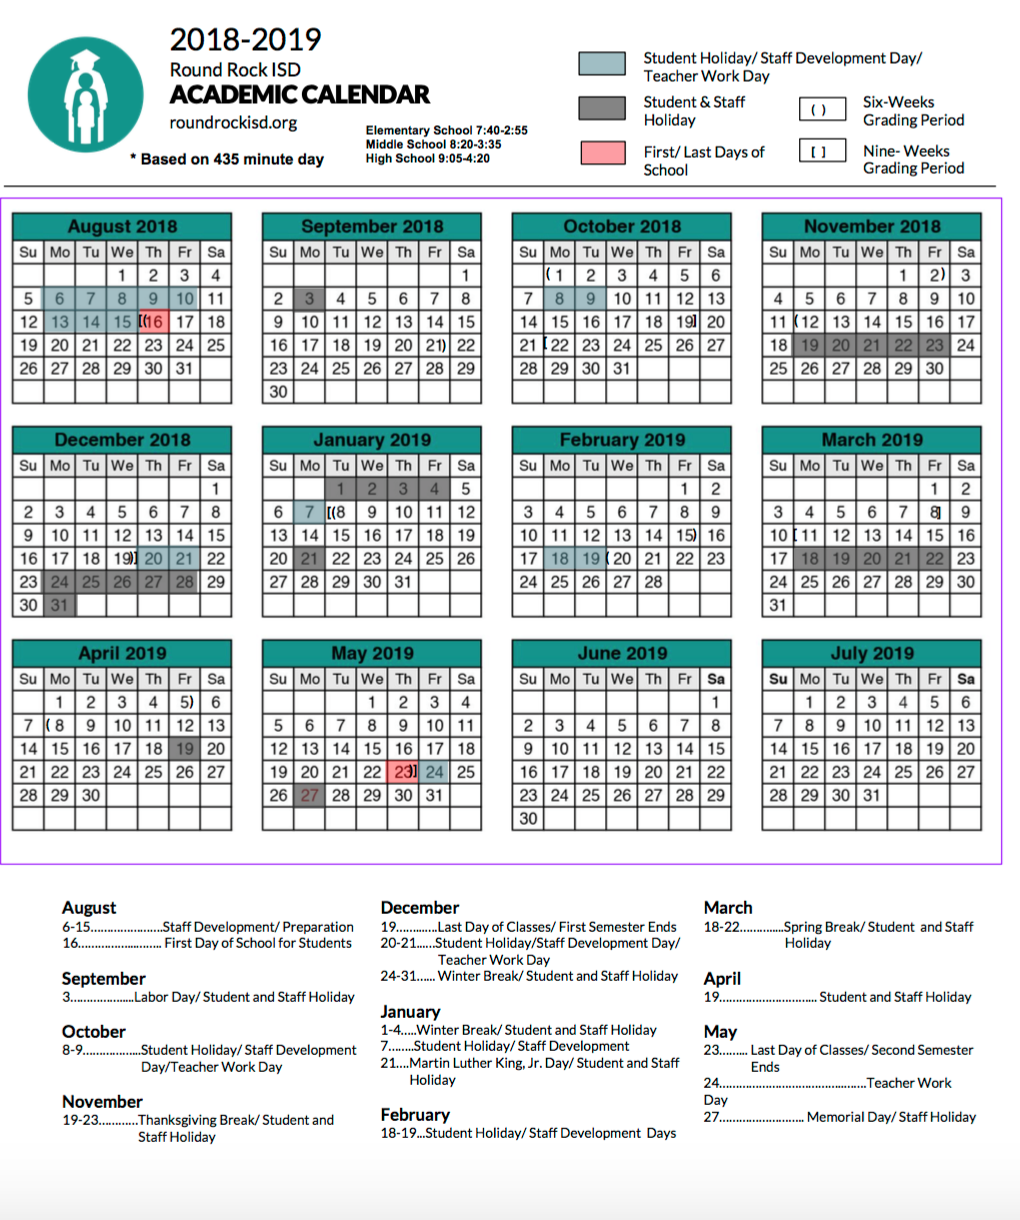 Round Rock Isd Calendar What You Need to Know About the RRISD Academic Calendars for 2018